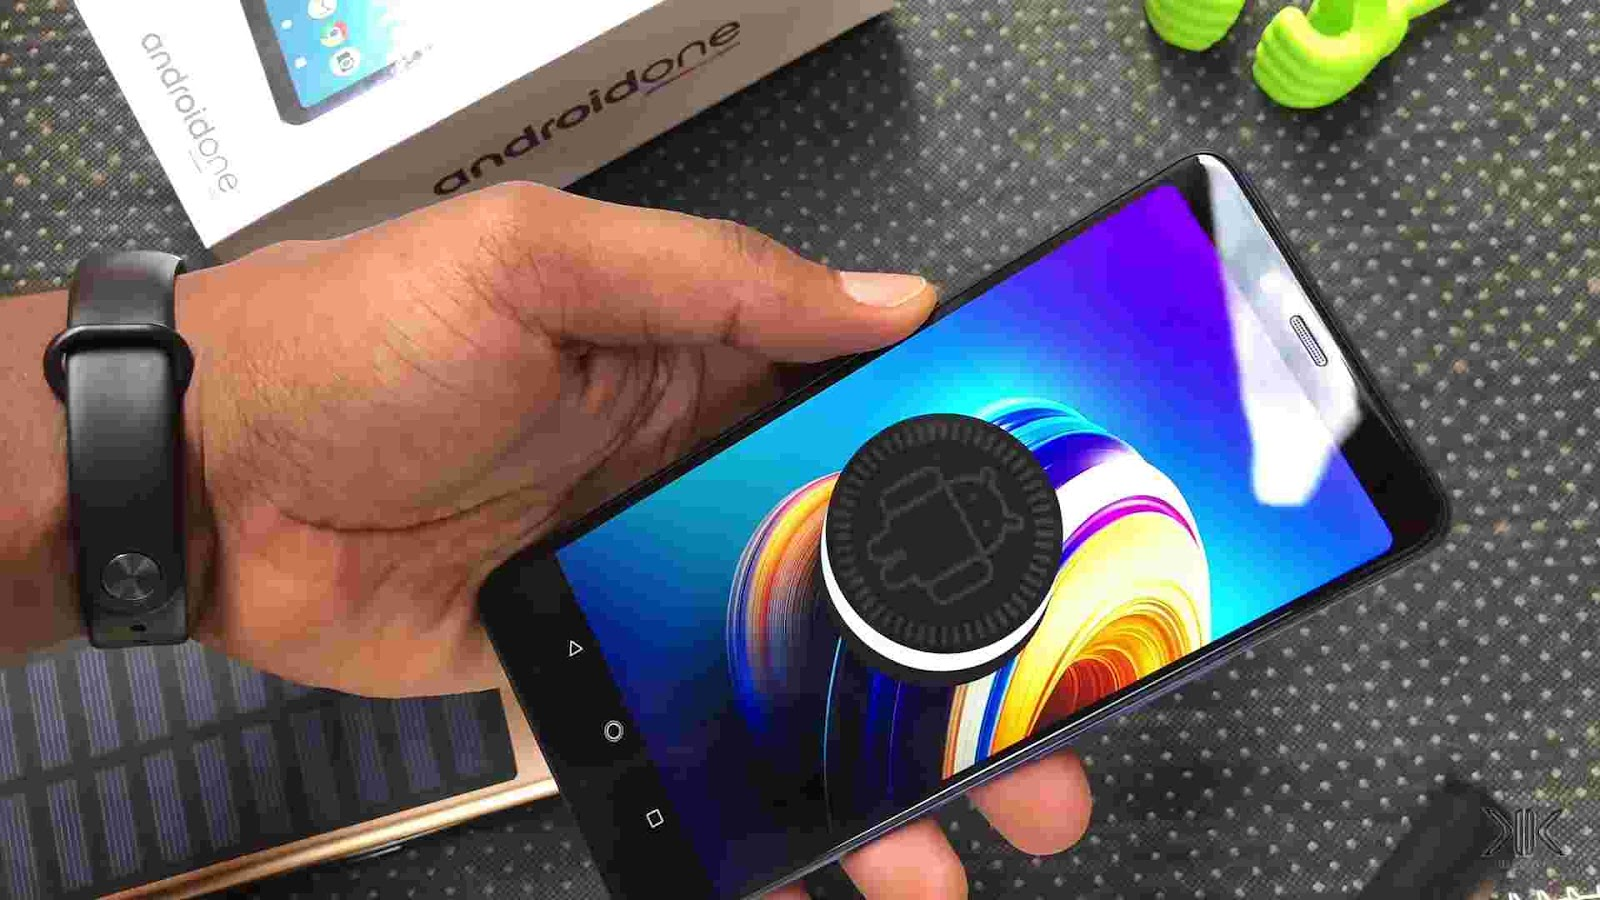 AndroidOne based on Android 8.1 Oreo version on the Infinix Note 5